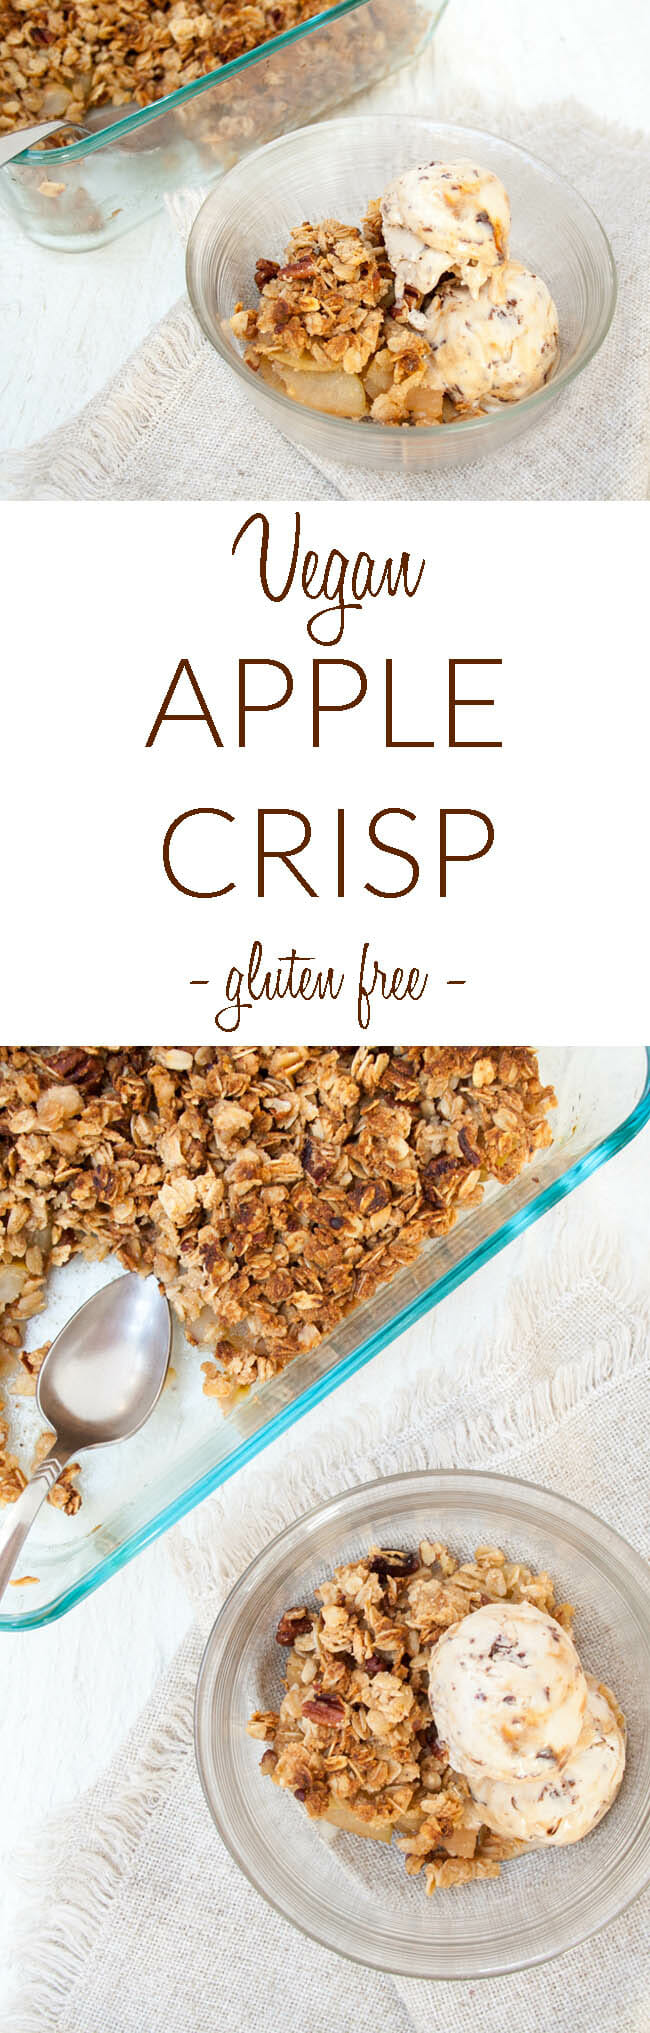 Vegan Apple Crisp collage photo with text.